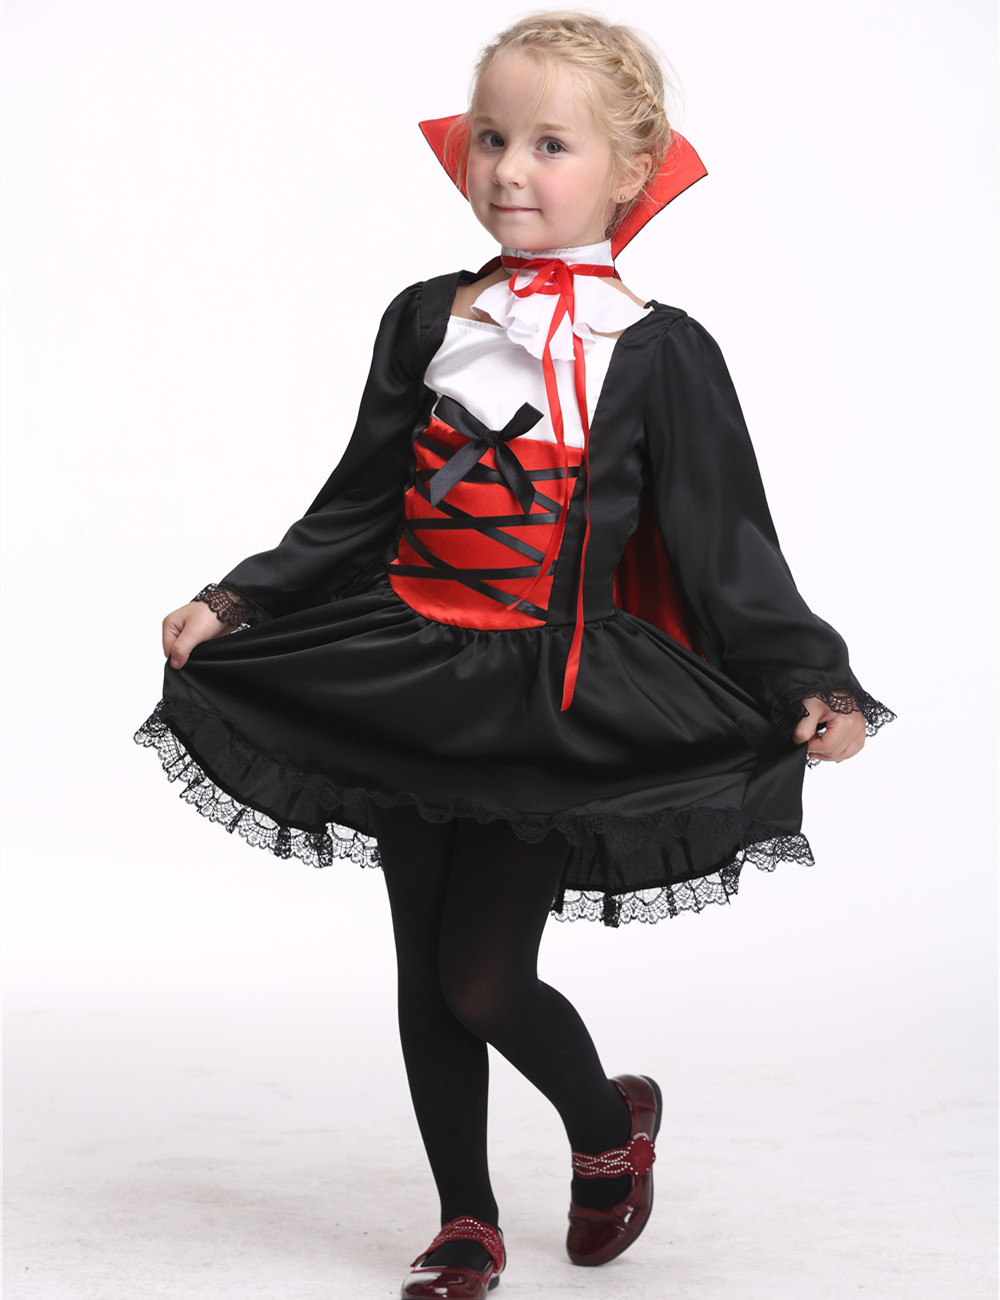 3-11Years Girls Vampire Costume Party Cosplay Dress With Cape Kids Perform Stage & Dance Wear Toddler Halloween Costume Dress